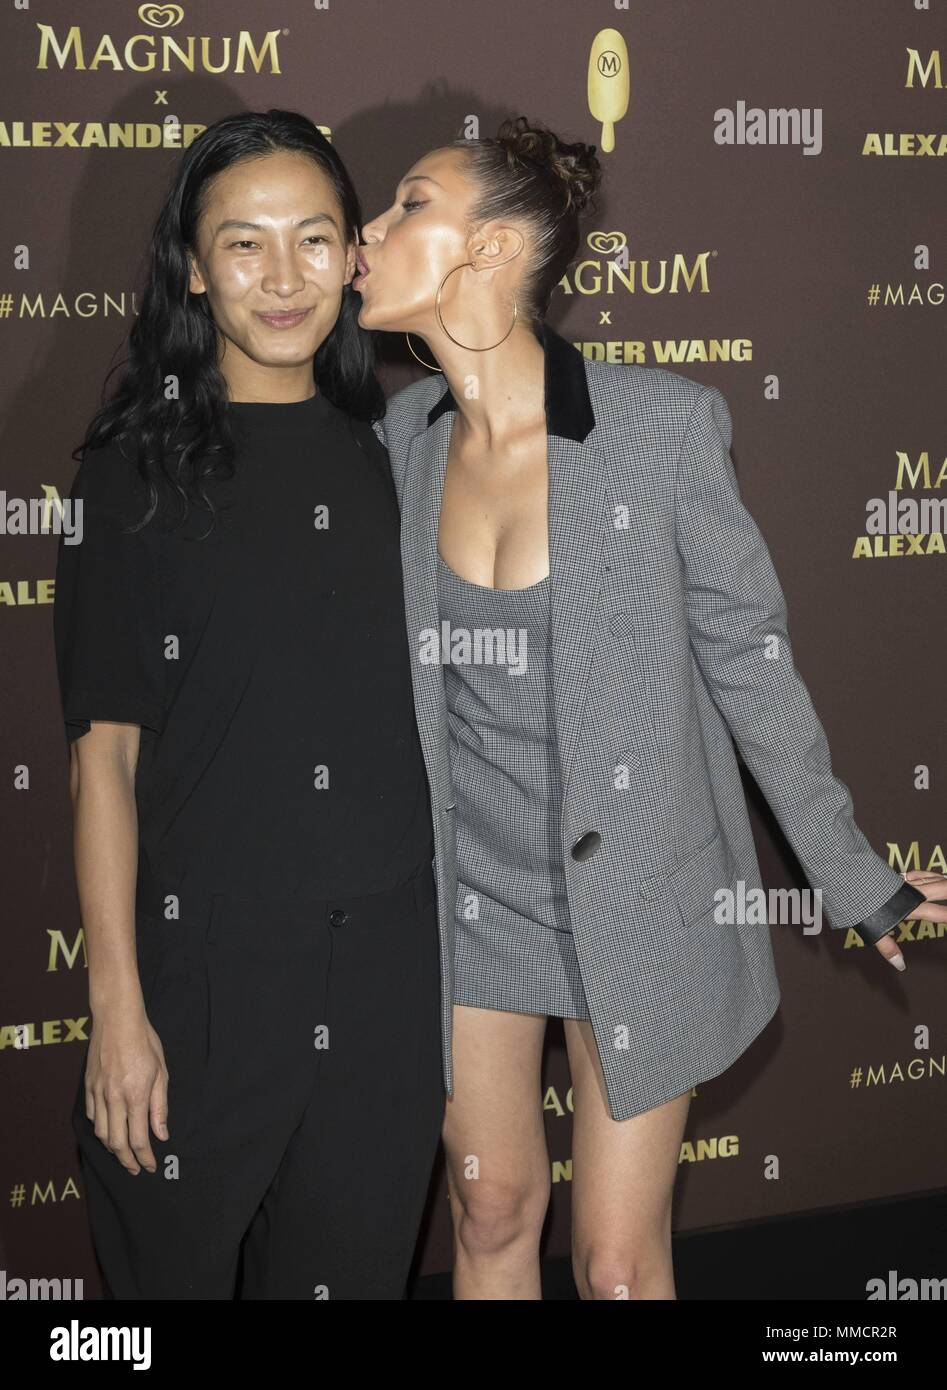 17898aec4de0 Alexander Wand and Bella Hadid attend the party of 'Magnum X Alexander Wang'  during the 71st Cannes Film Festival at L'Ondine Beach in Cannes, France,  ...